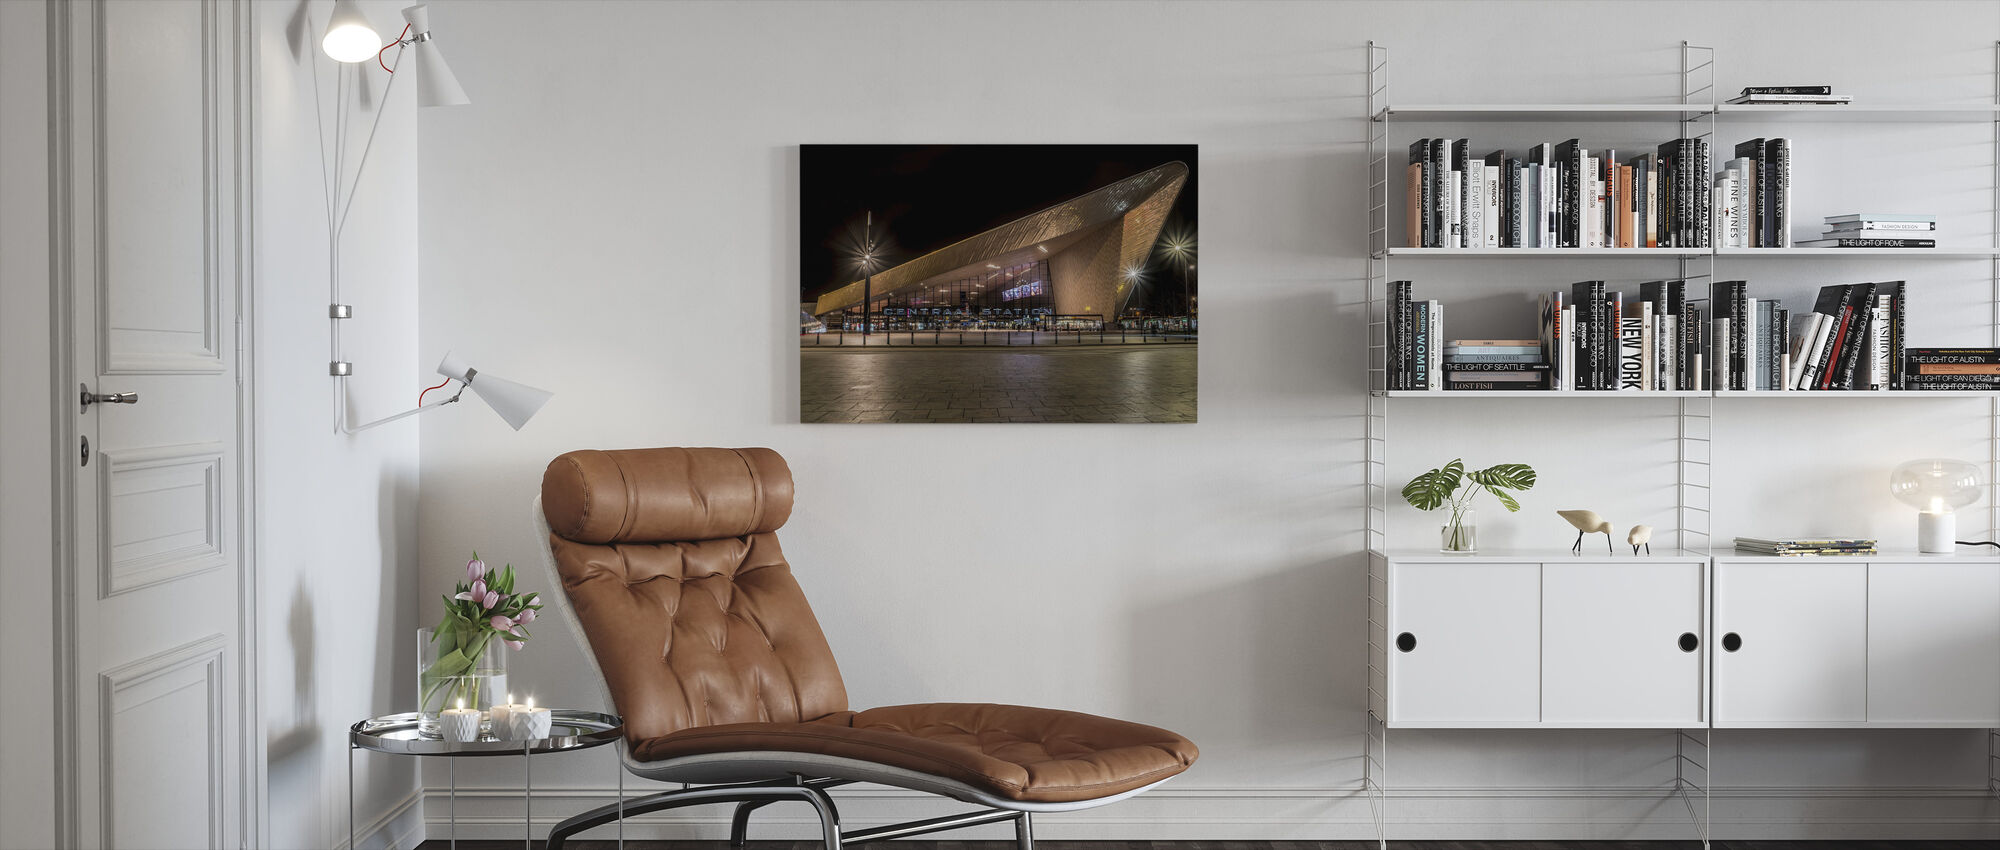 Rotterdam Centraal Station - Canvas print - Woonkamer